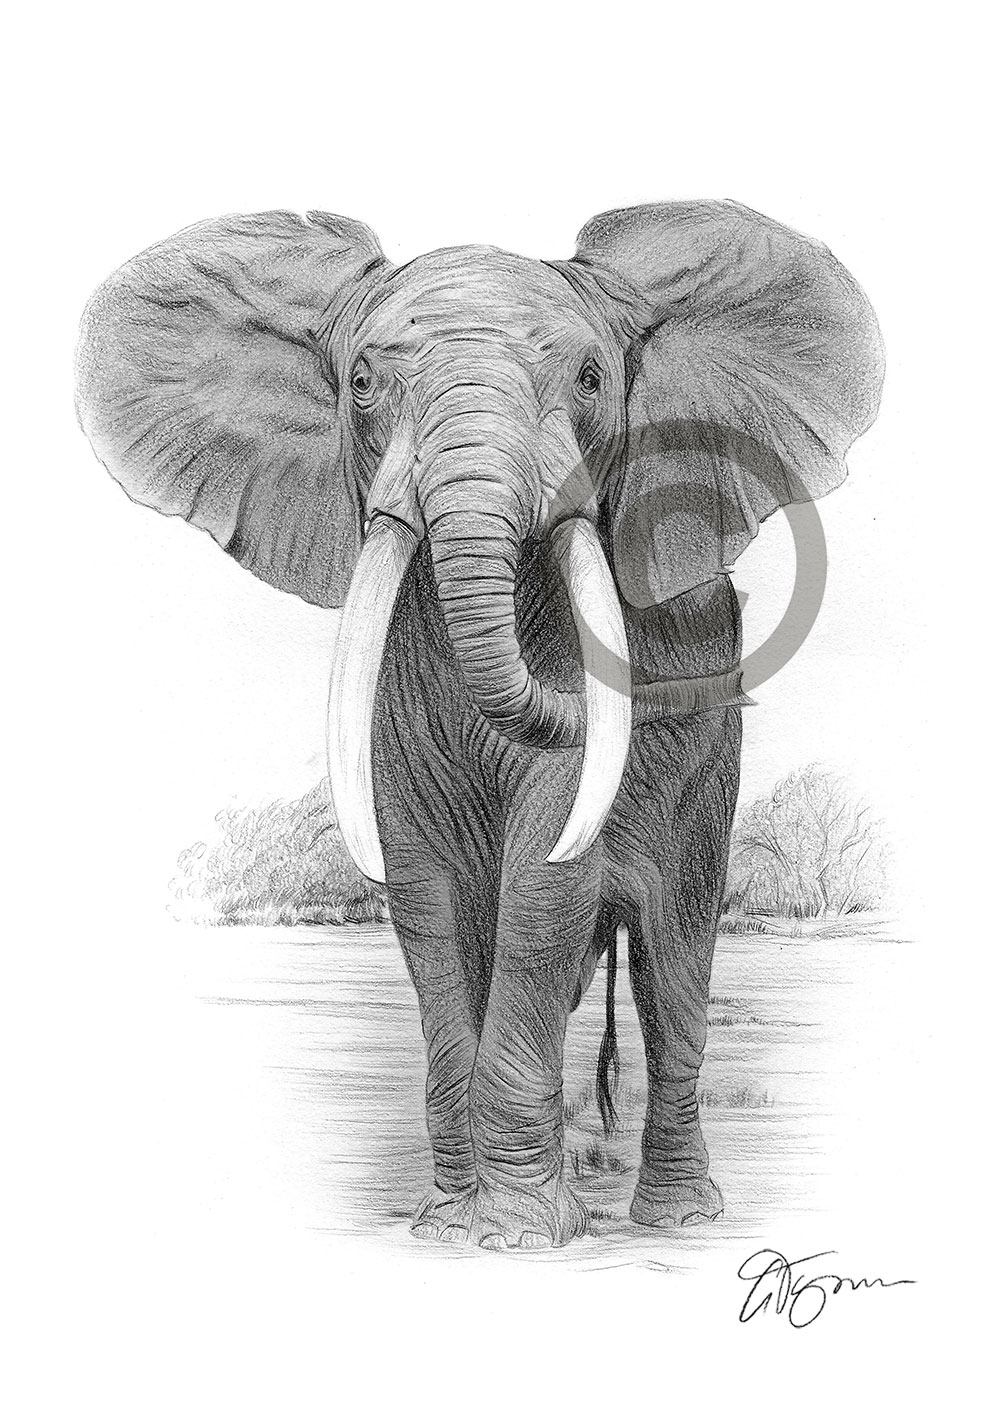 Details about elephant art pencil drawing print a3 a4 signed by artist gary tymon artwork